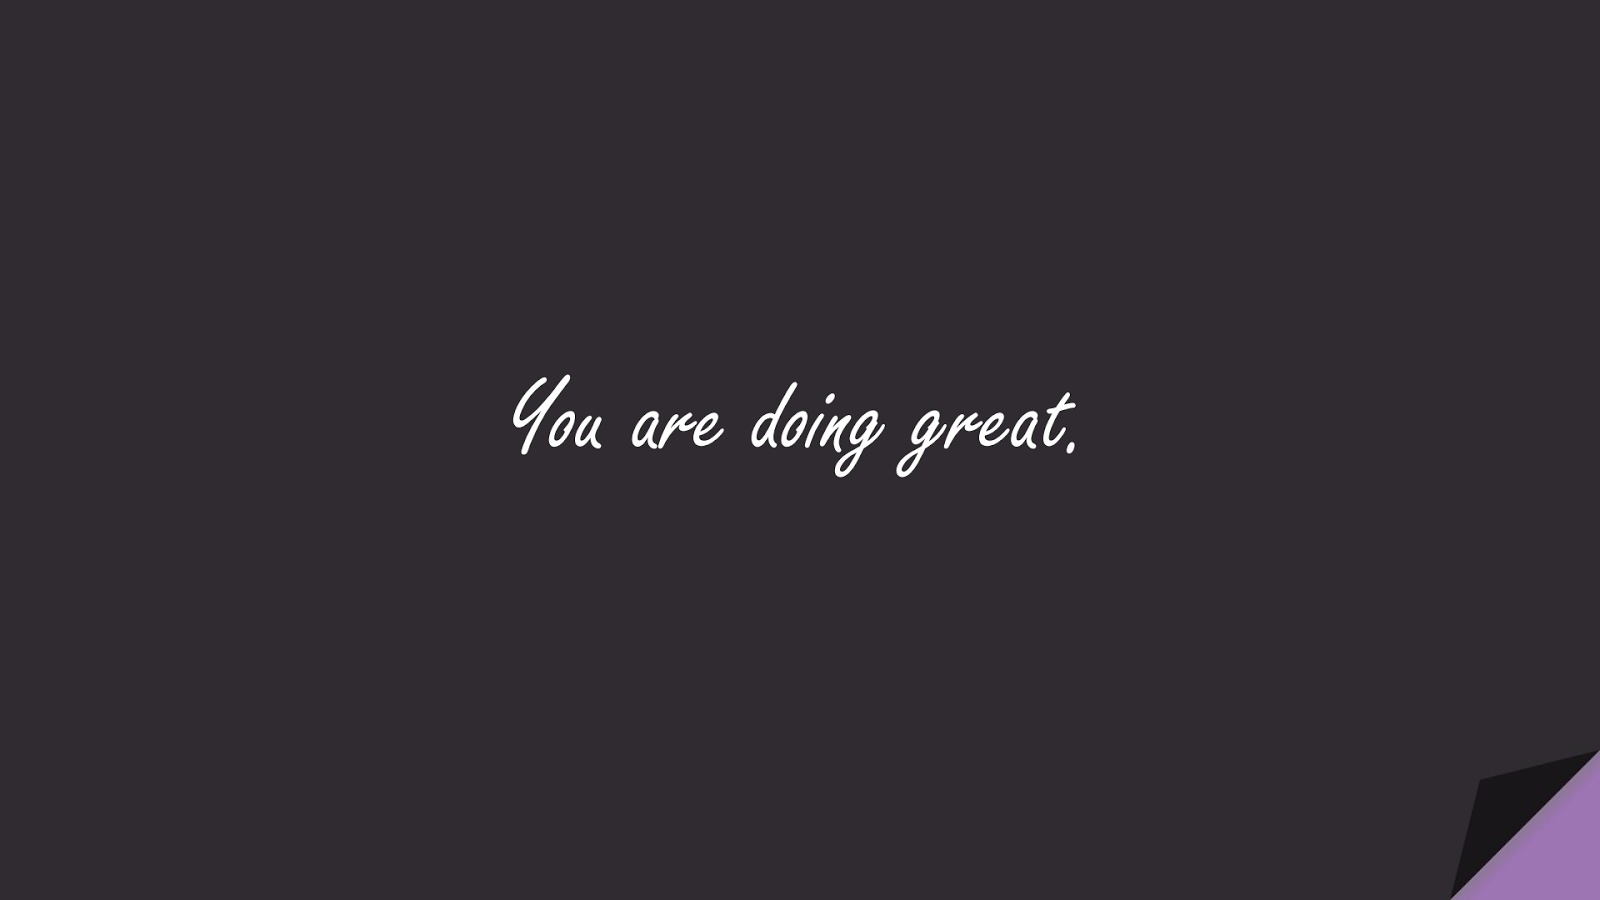 You are doing great.FALSE